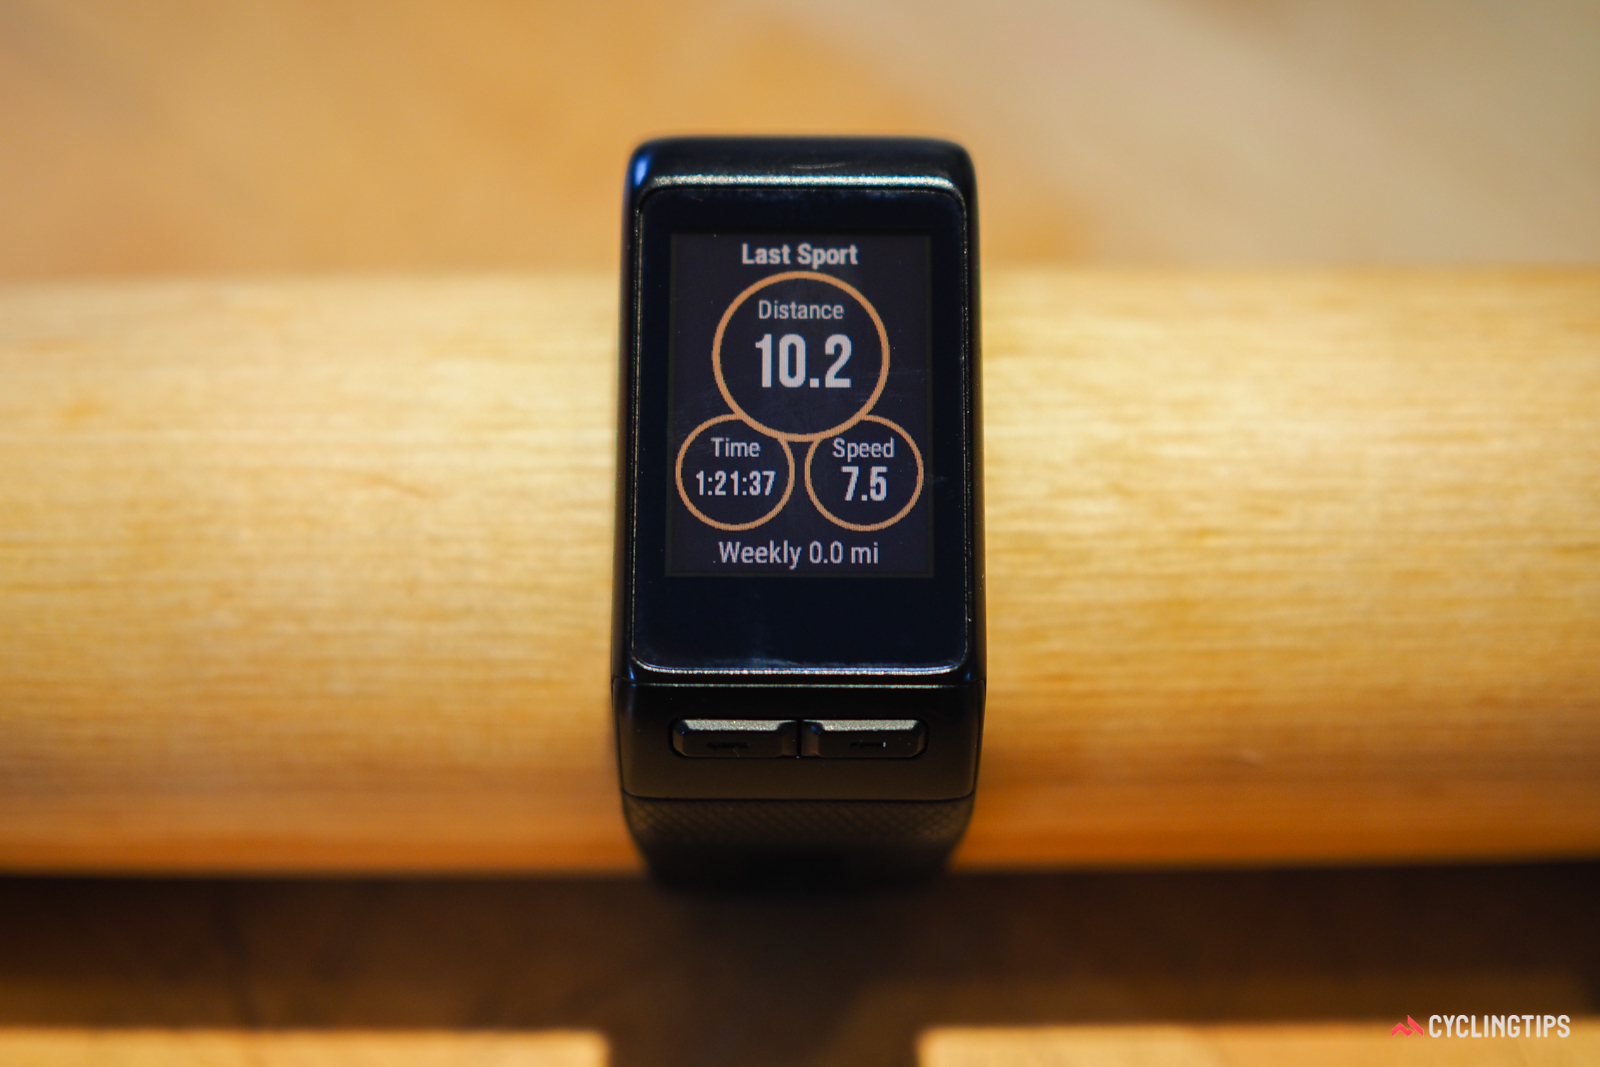 The Garmin Vivoactive HR keeps a log of past activities, each of which can be pulled up at will.